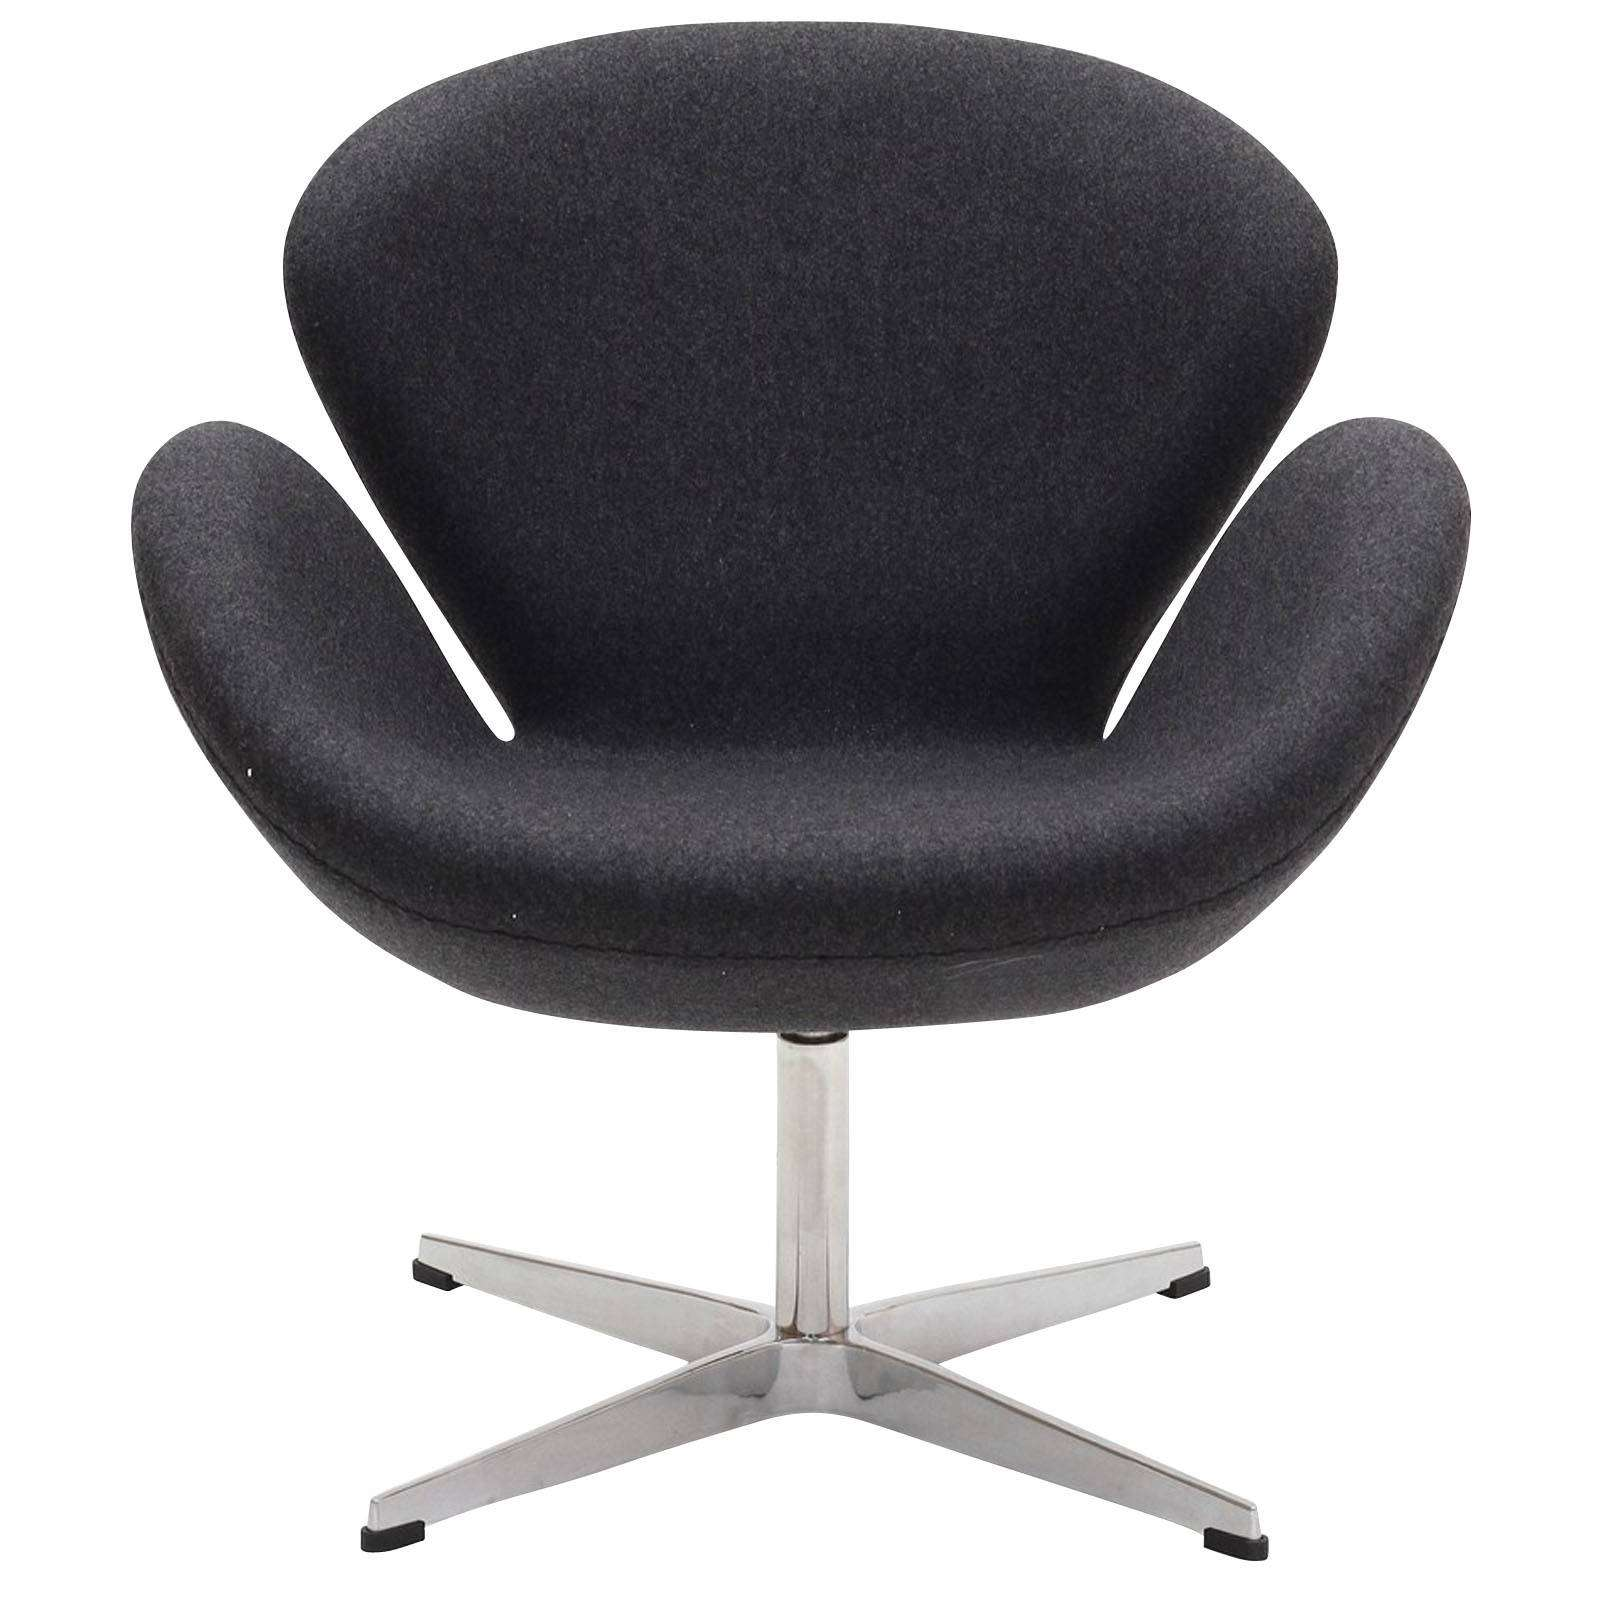 arne jacobsen swan chair wool. Black Bedroom Furniture Sets. Home Design Ideas